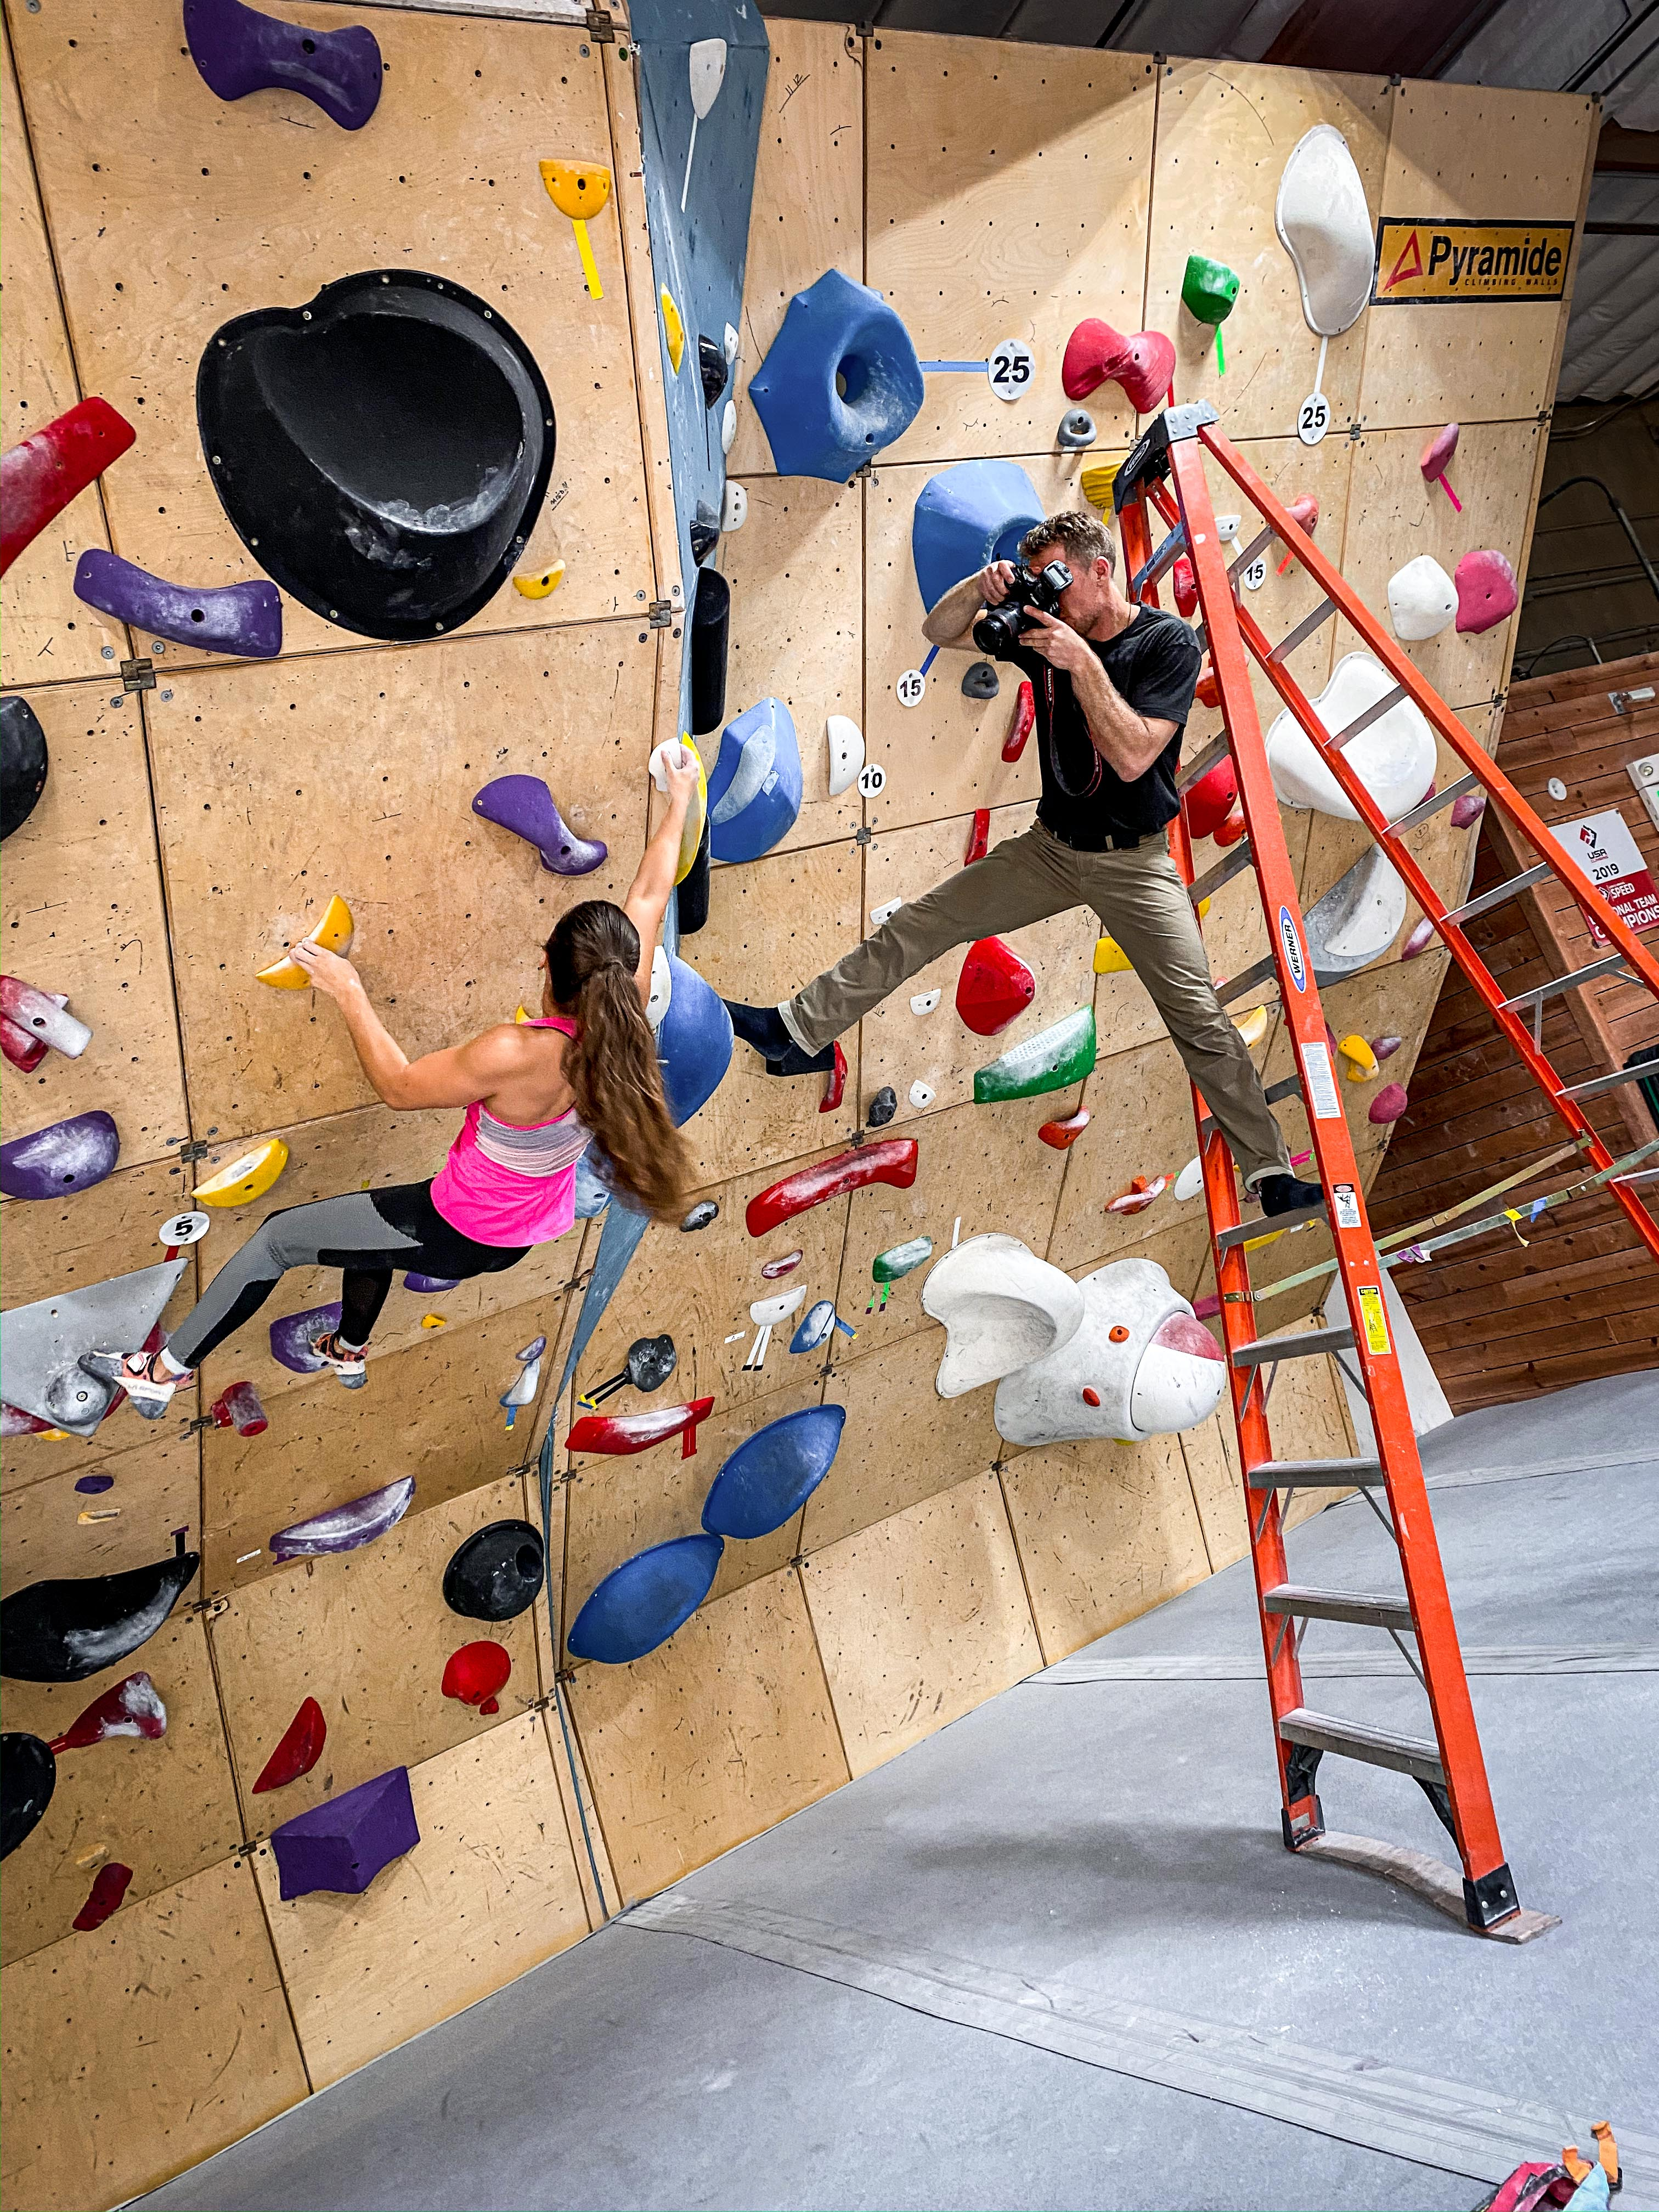 Tyler balances himself on a ladder and the climbing wall as he photographs Brooke.